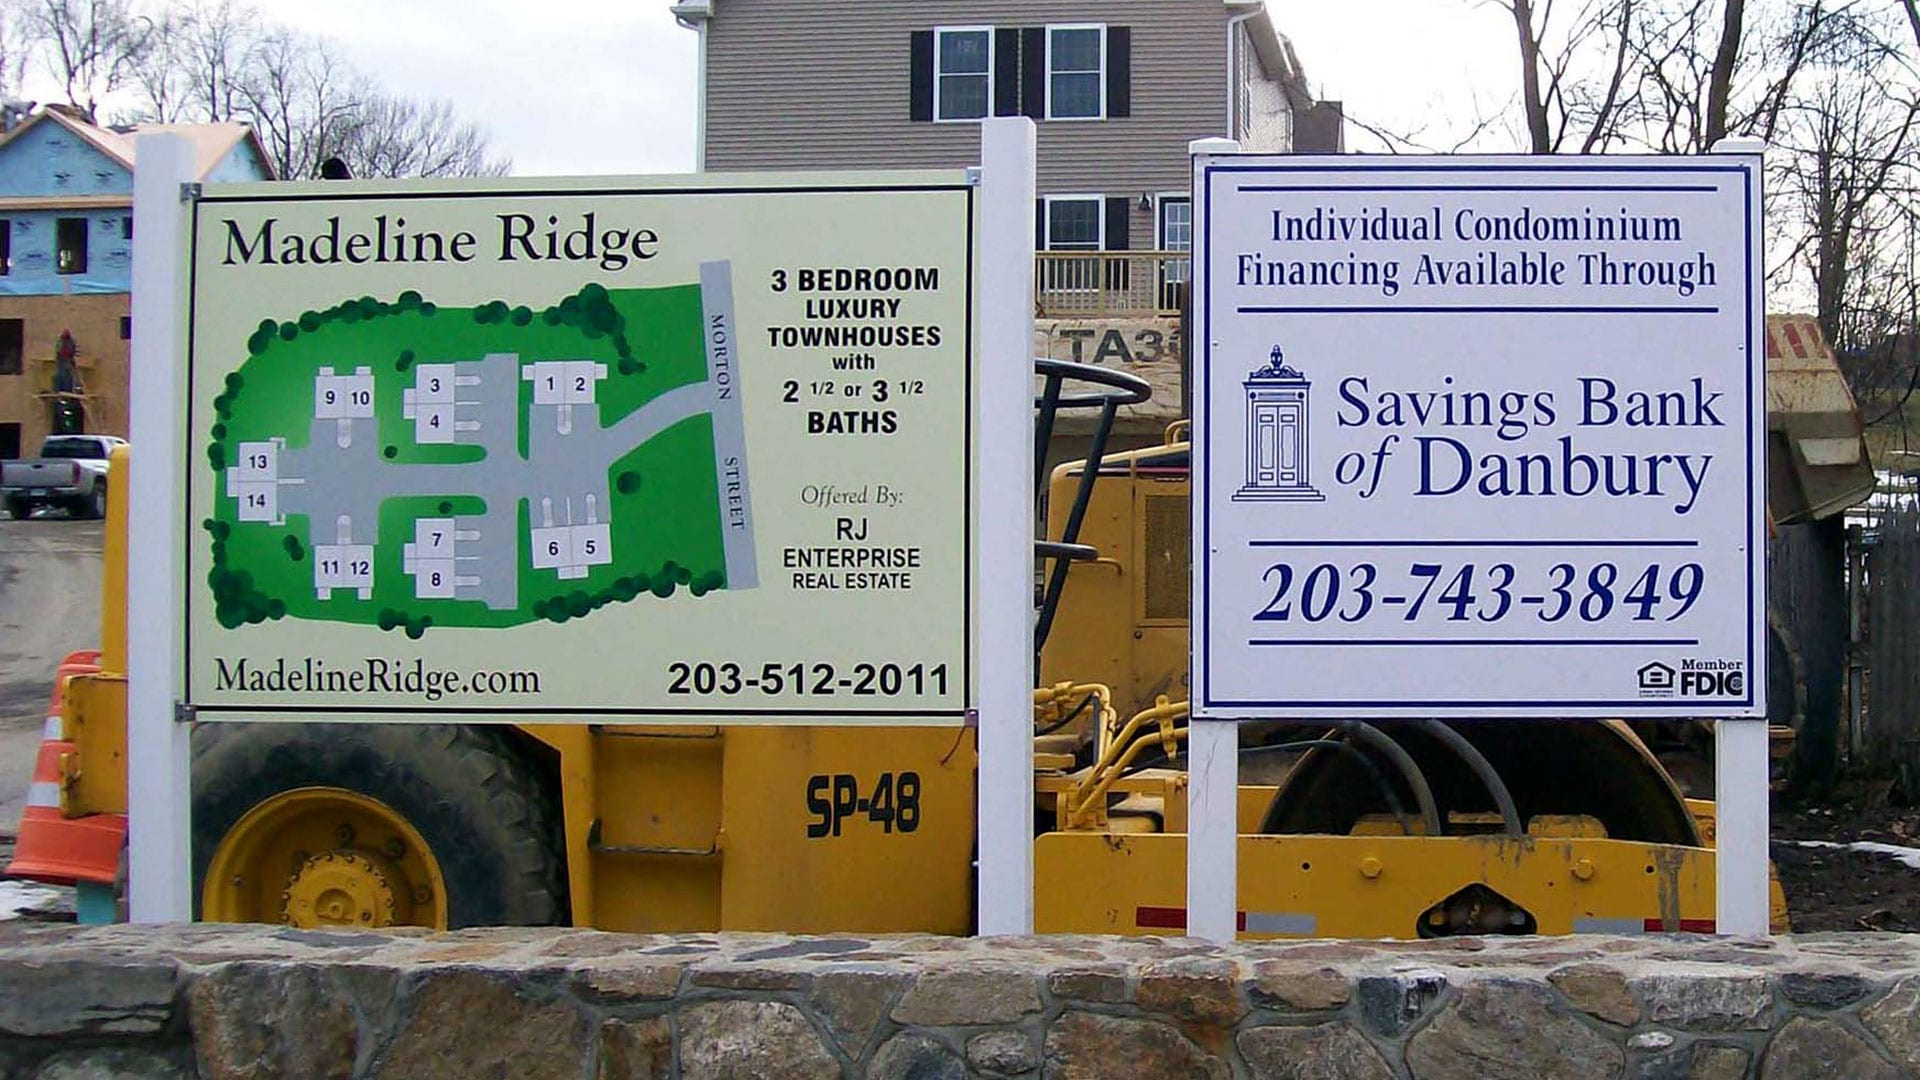 Two site signs on a stone wall